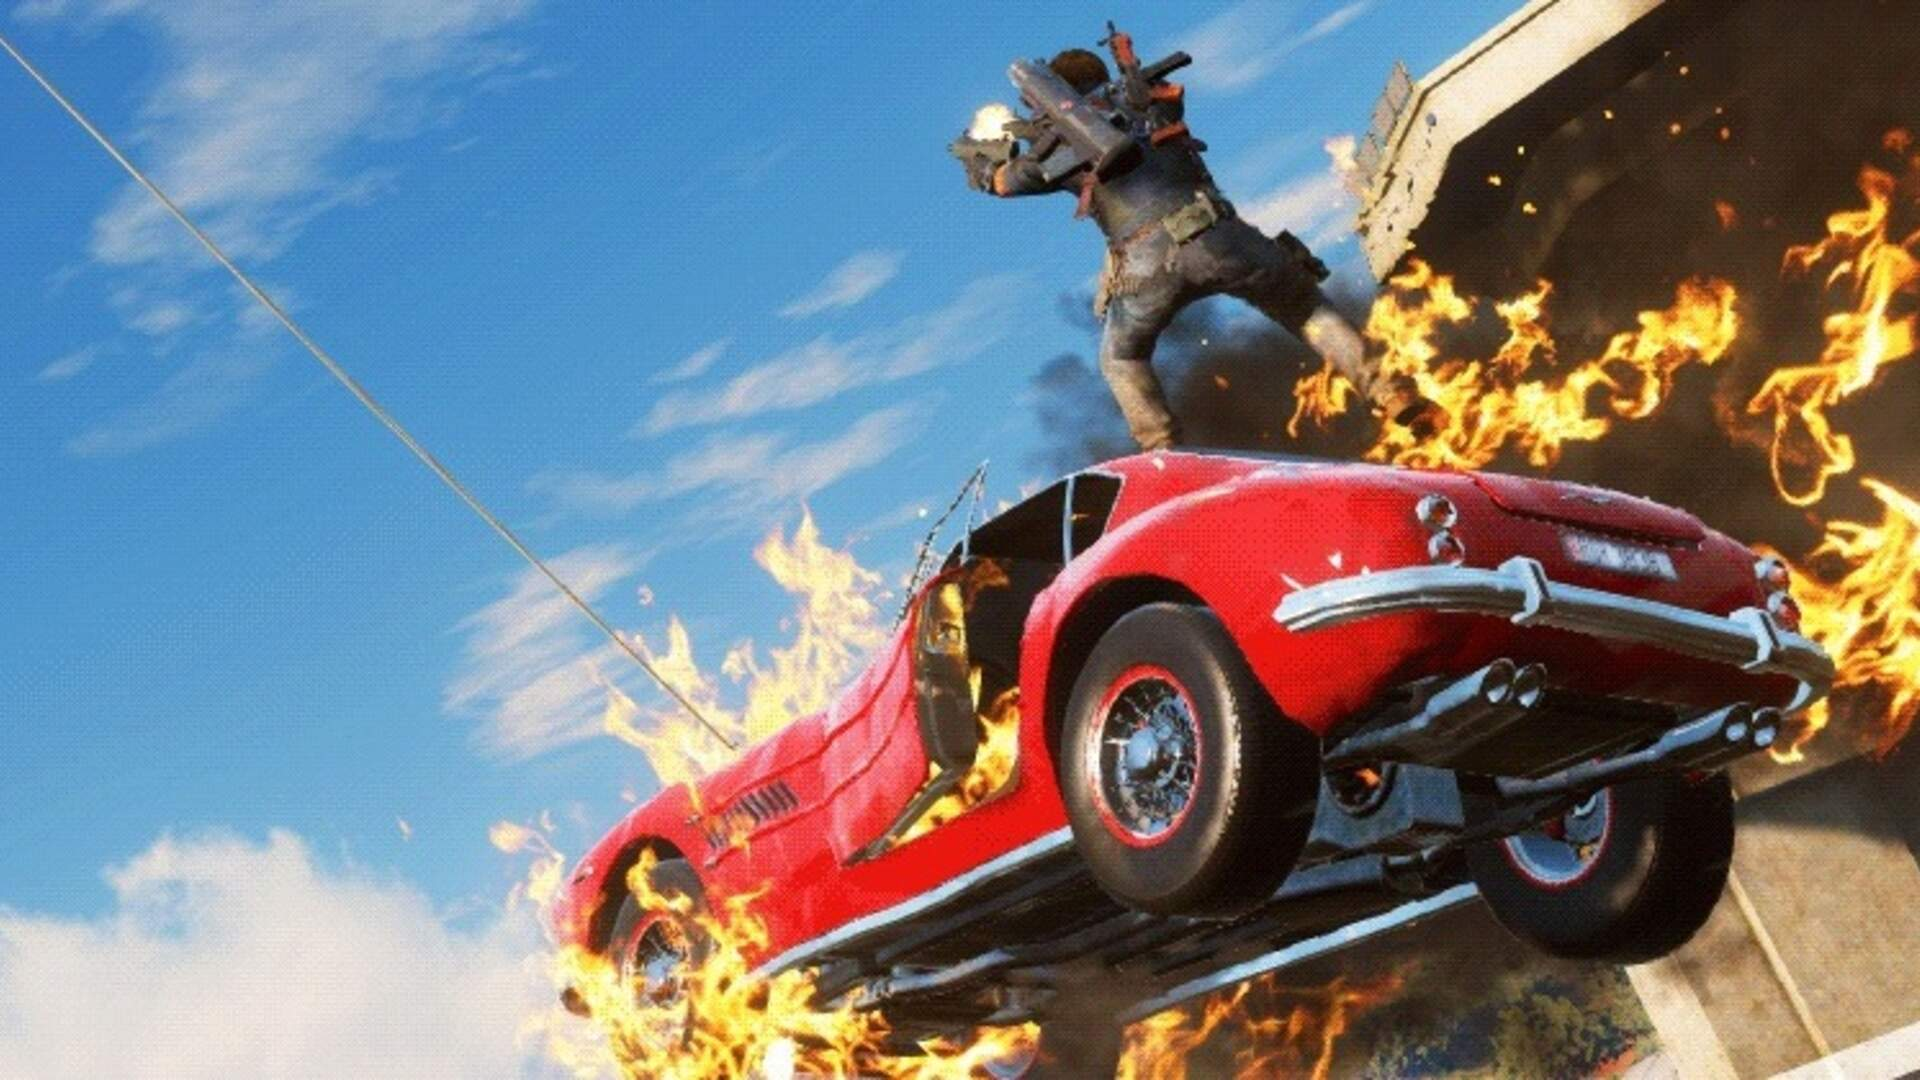 Just Cause 3 Story Mission Guide: Turncoat, Find Dr Zeno Antithikara